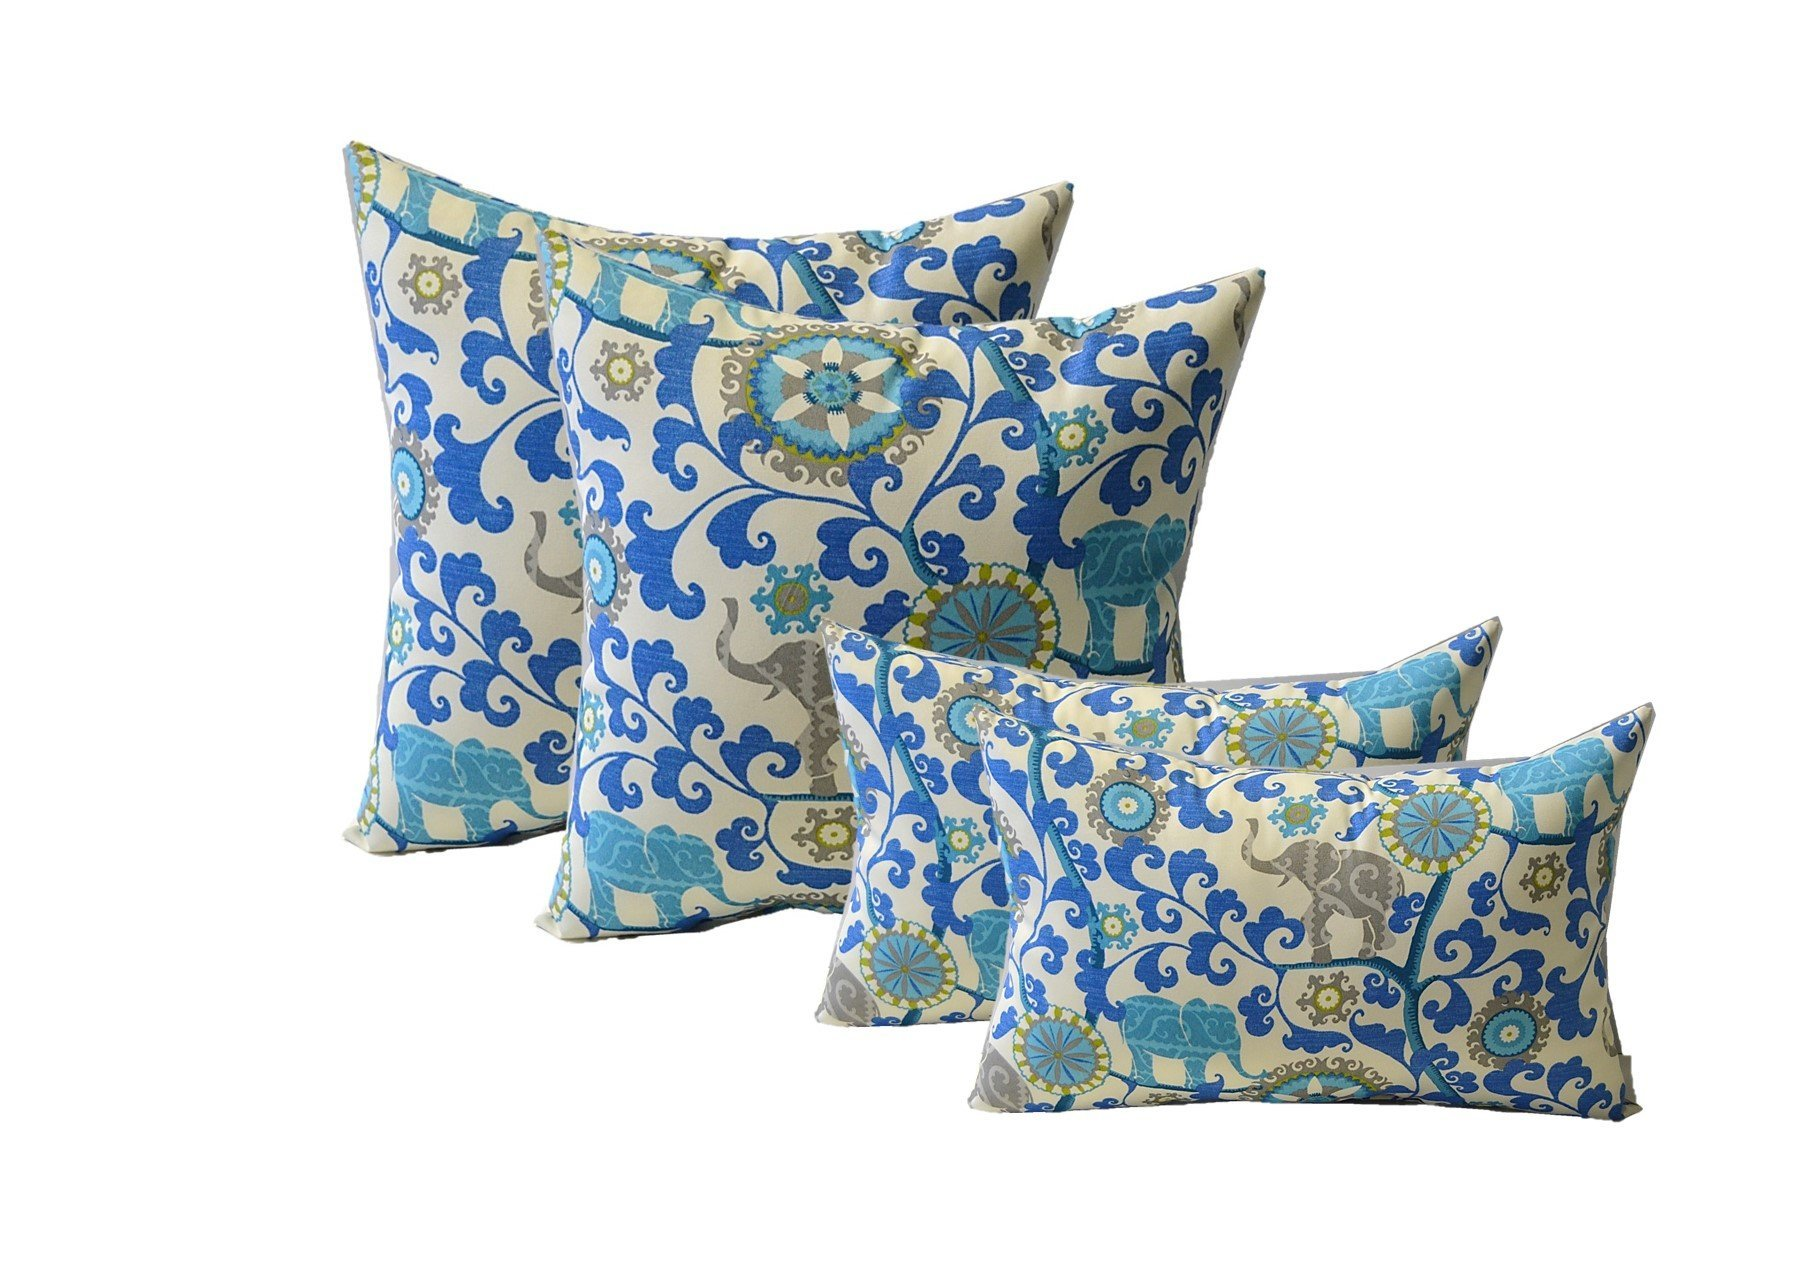 Set of 4 Indoor / Outdoor Pillows - 20'' Square Throw Pillows & Rectangle / Lumbar Decorative Throw Pillows - Sapphire Blue, Green, Turquoise, Gray Bohemian Elephant Fabric - Zipper Covers + Inserts